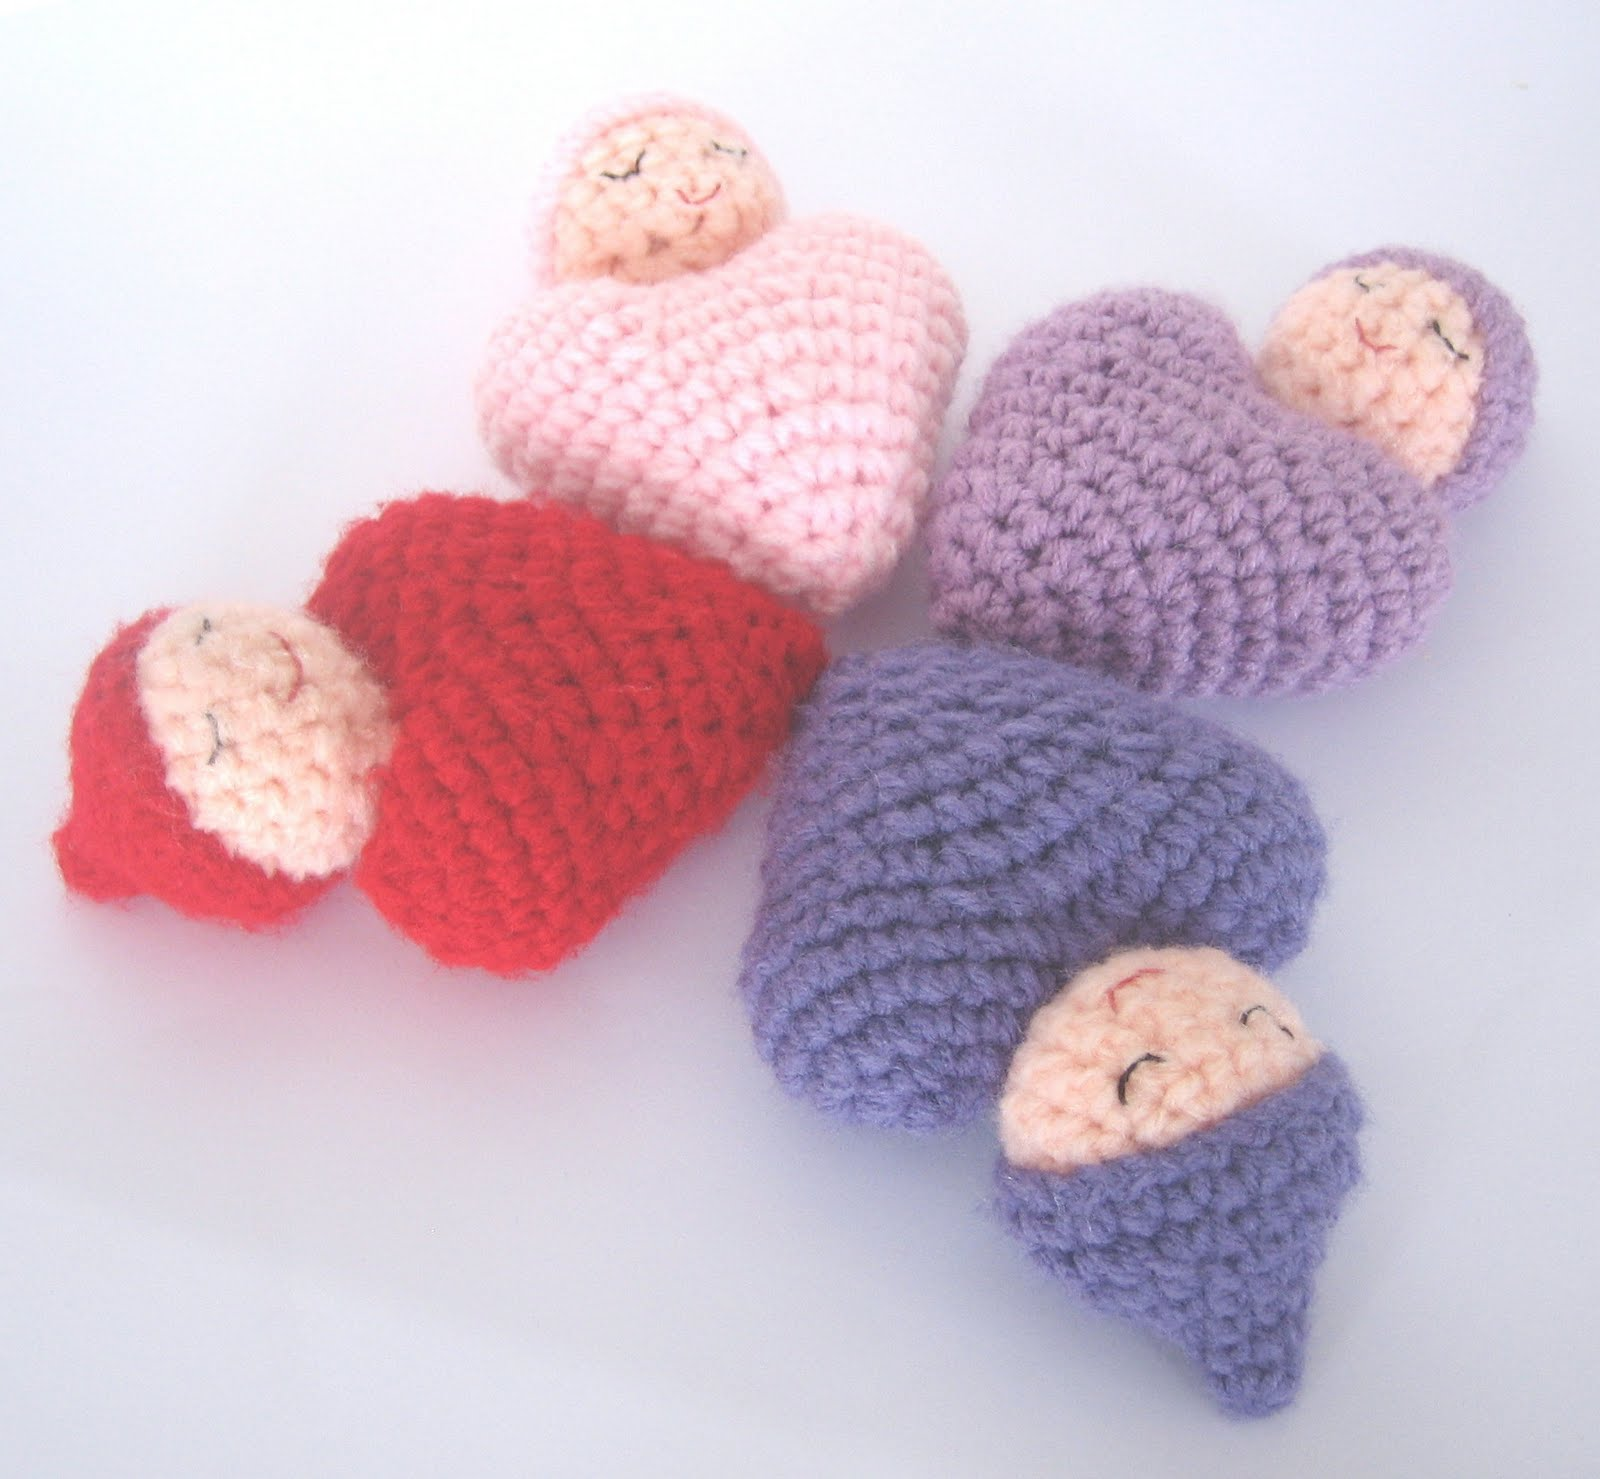 CROCHET N PLAY DESIGNS: Free Crochet Pattern: Heart Shaped ...